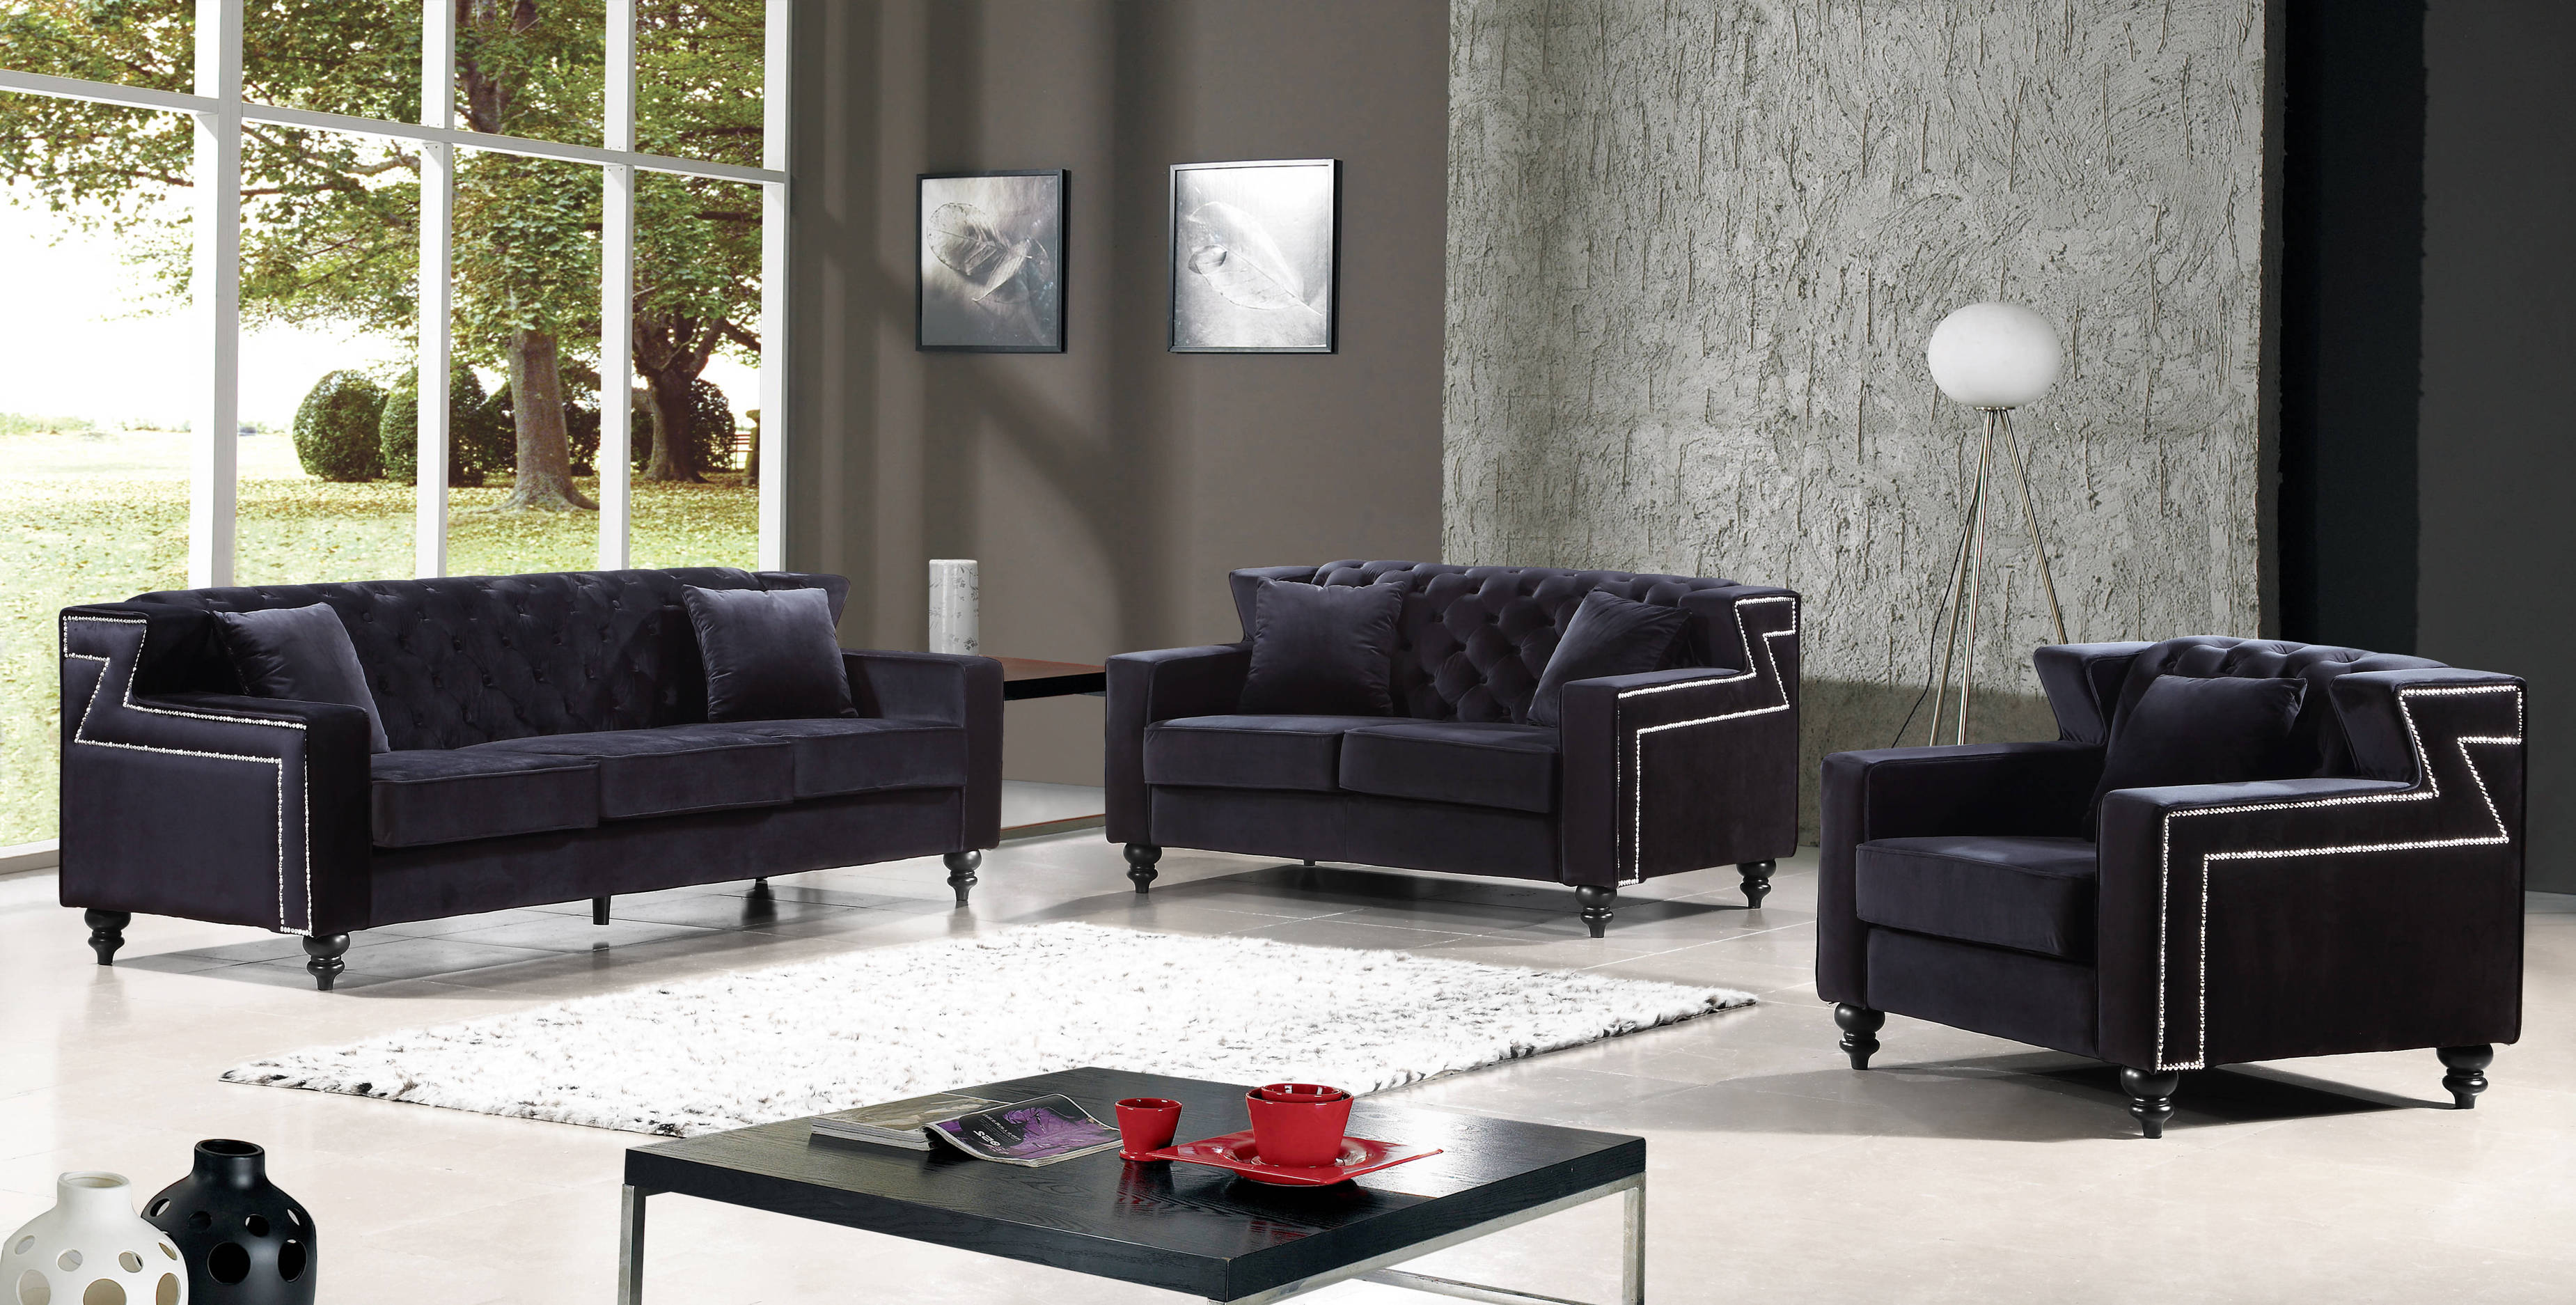 Harley black velvet tufted back silver nailheads living for Best living room set deals